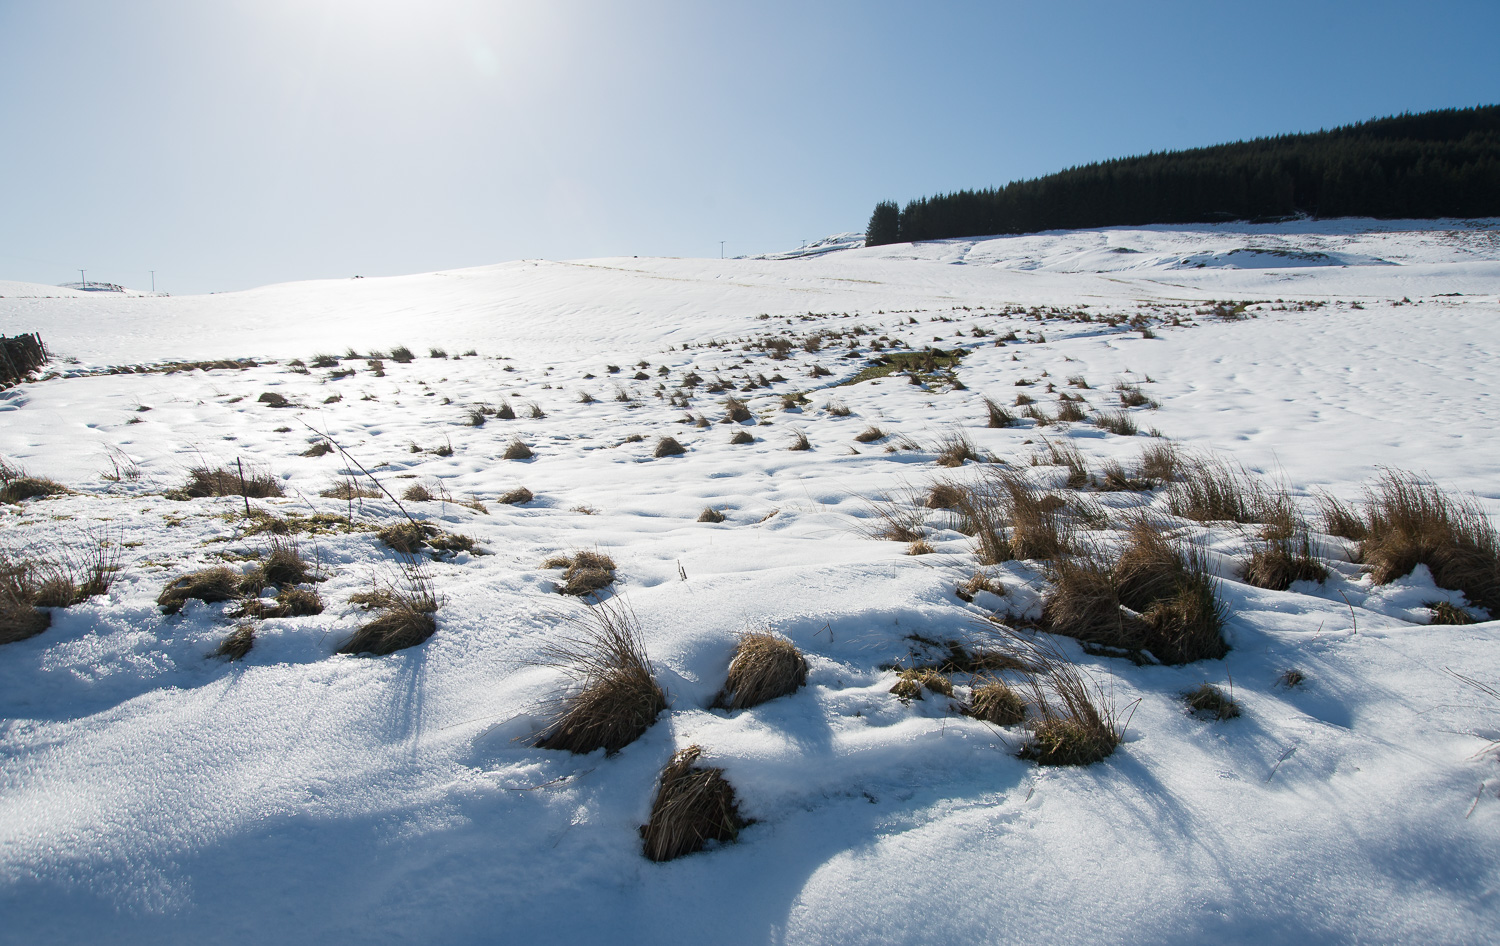 Sunshine and Snow - Photographer's dream | DSC_3044.jpg